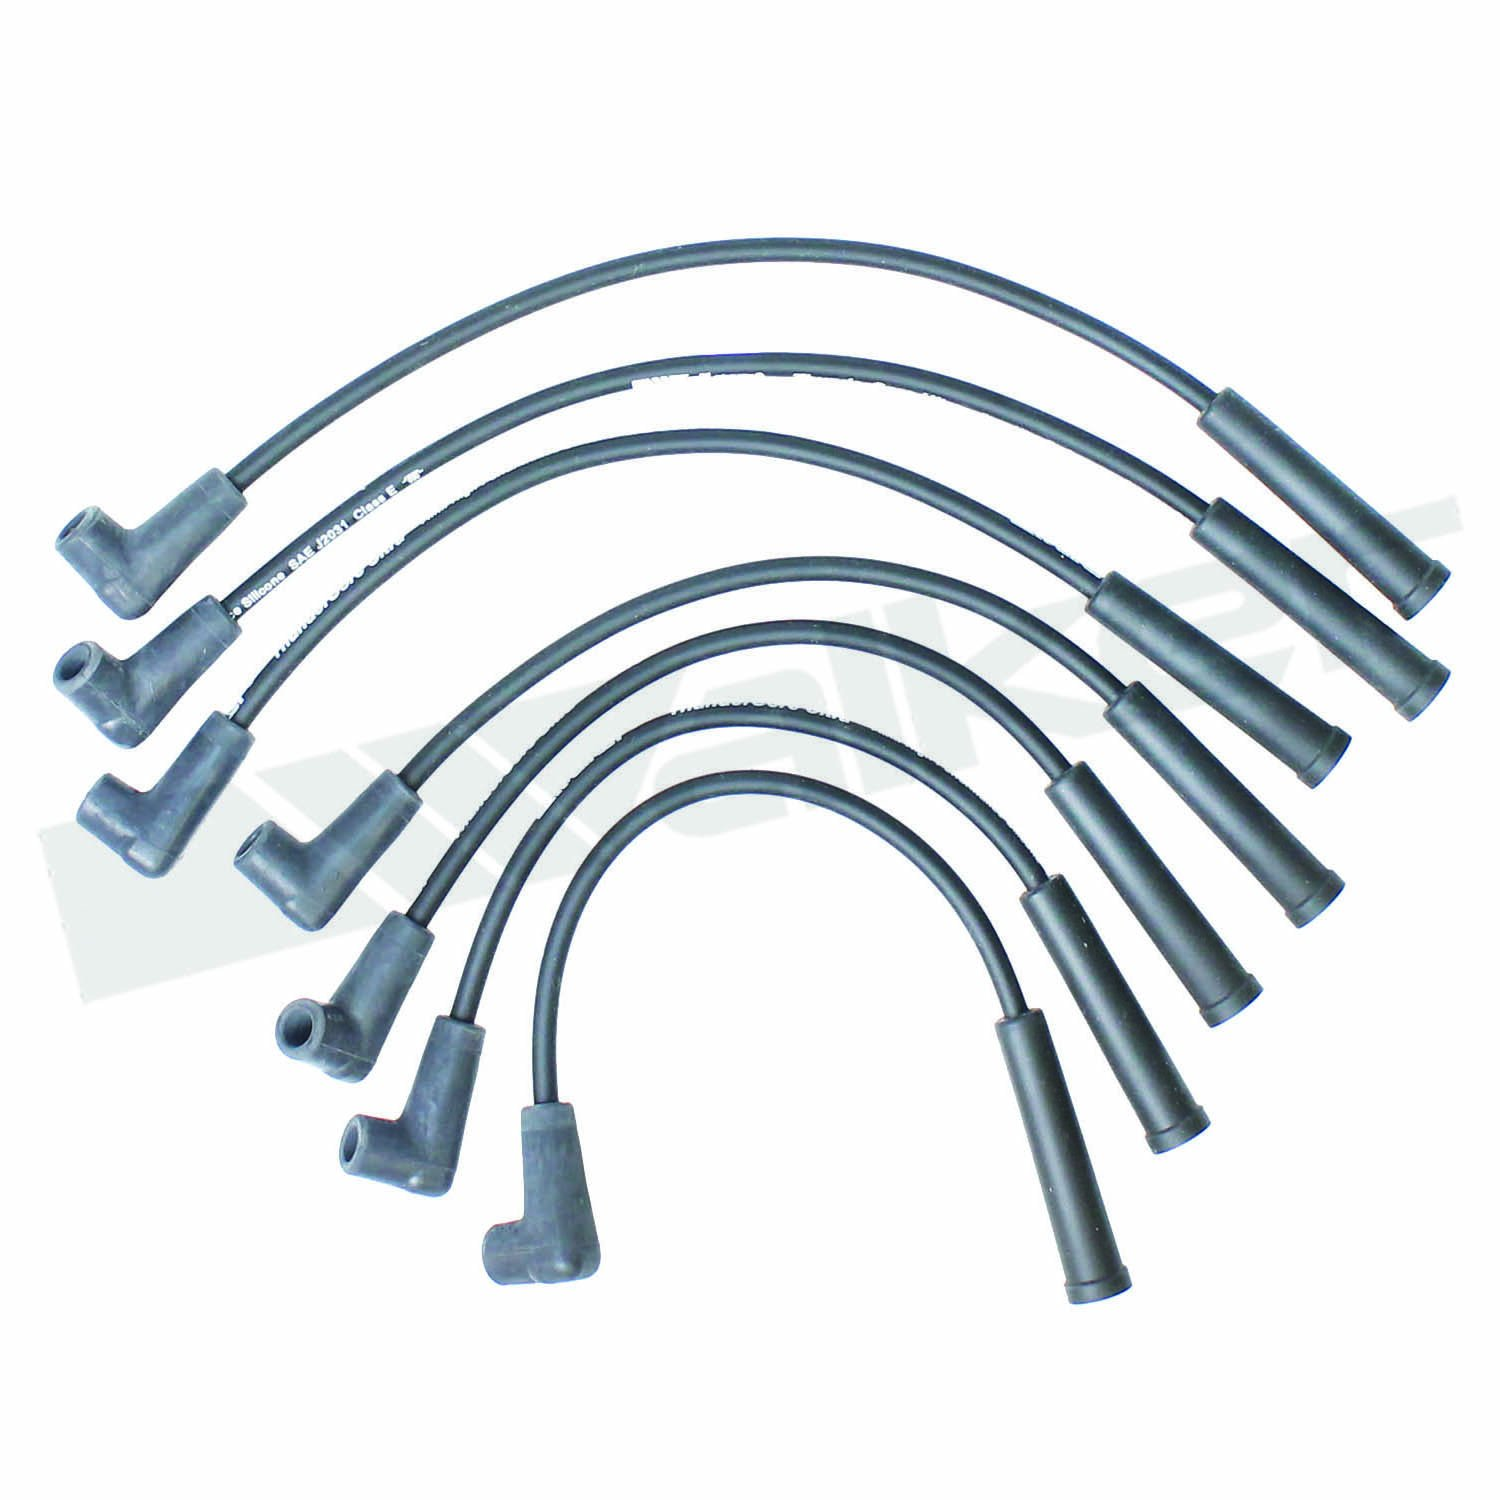 Walker Products 900-1351 Thundercore Ultra Spark Plug Wire Set